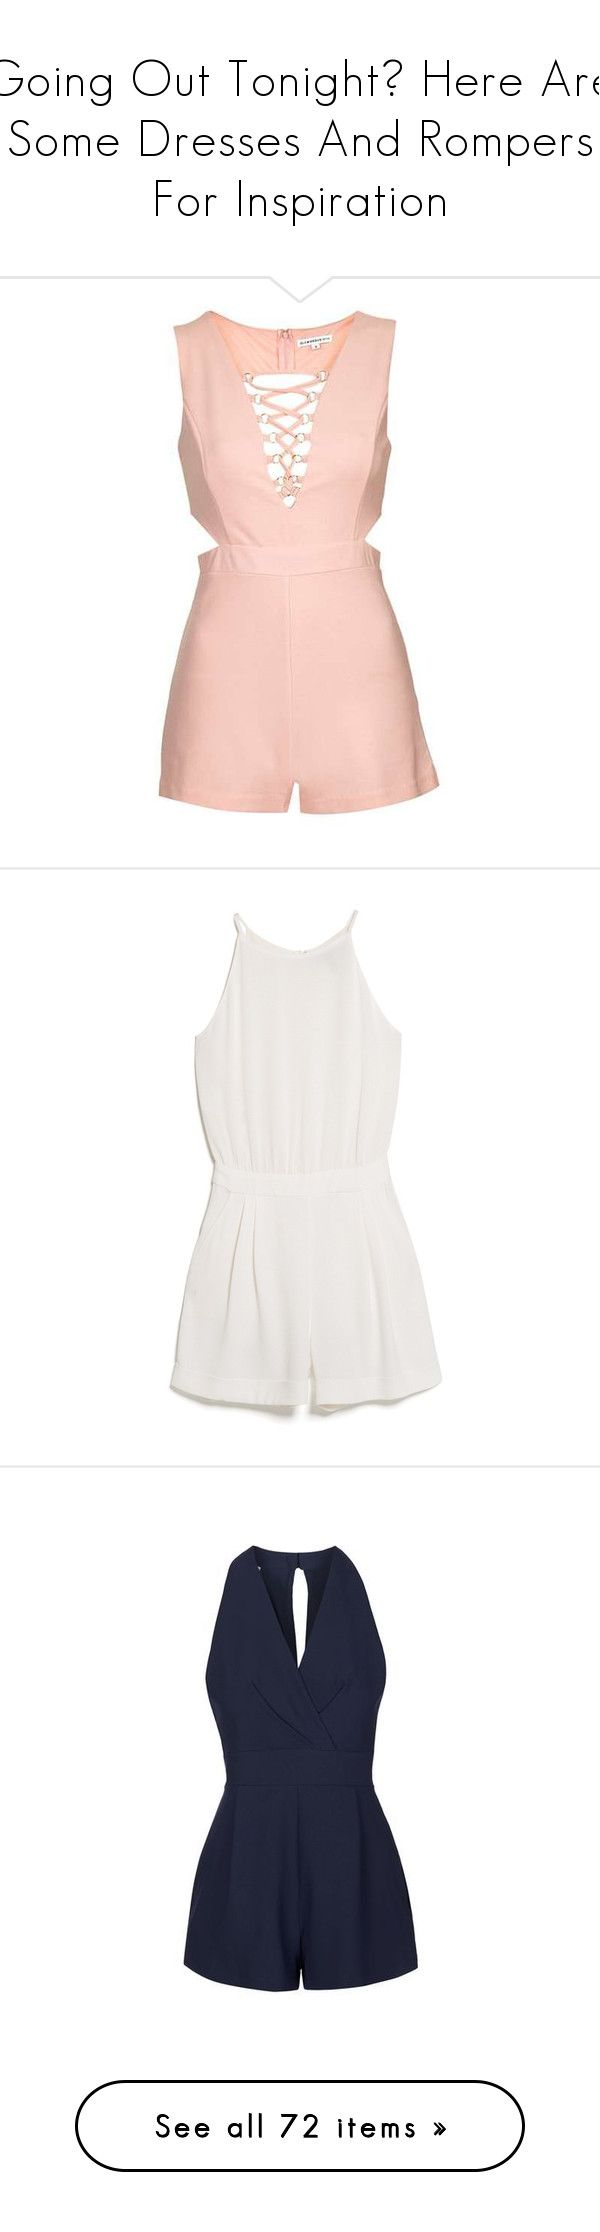 """""""Going Out Tonight? Here Are Some Dresses And Rompers For Inspiration"""" by meredith-gomes on Polyvore featuring jumpsuits, rompers, playsuits, dresses, jumpsuit, jumpsuits and rompers, going out jumpsuits, going out rompers, topshop jumpsuit and topshop romper"""